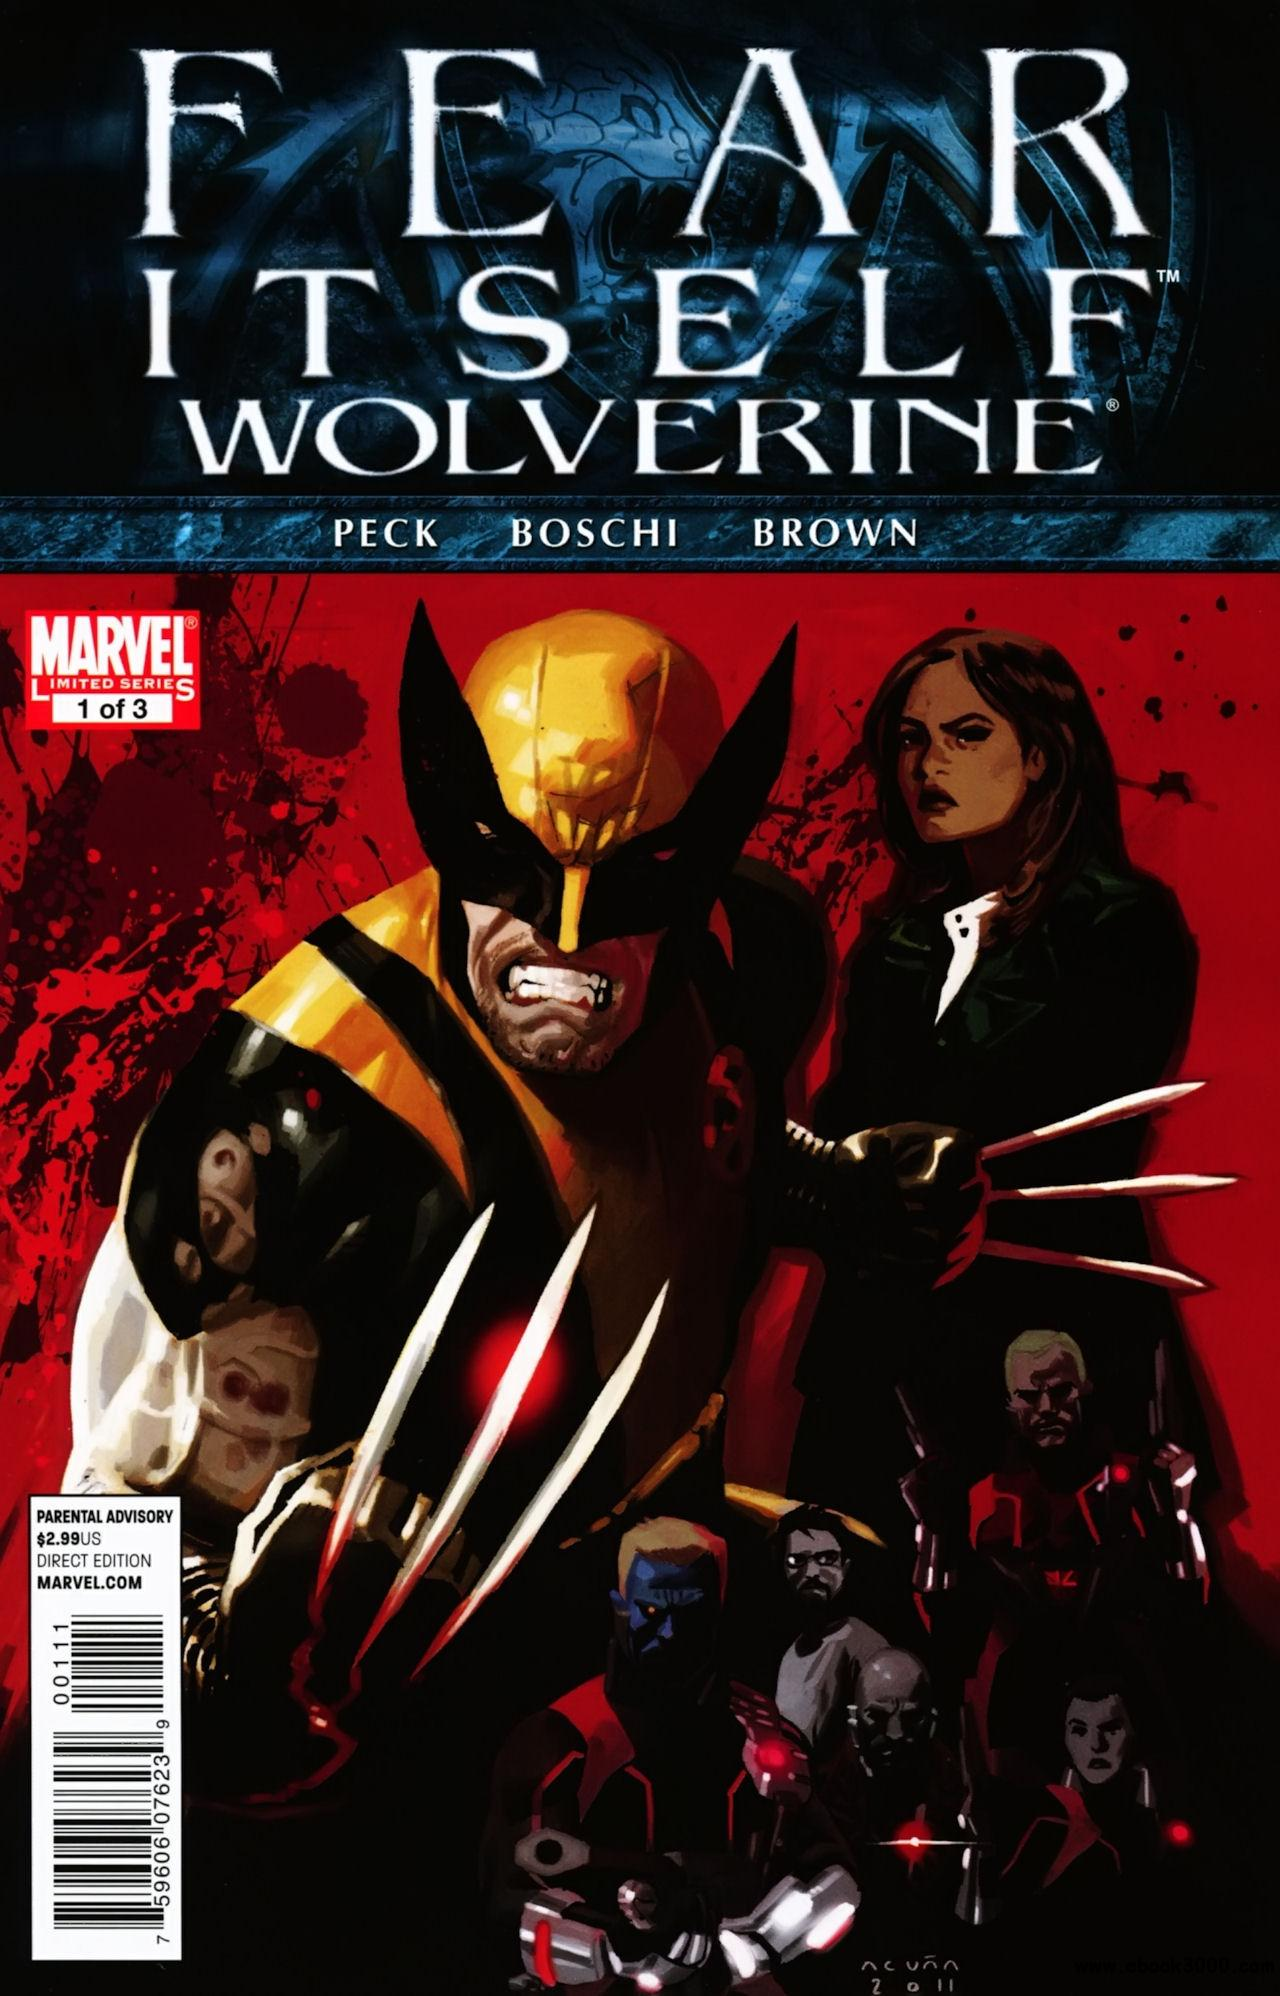 Fear Itself - Wolverine #1 (of 3) (2011) free download